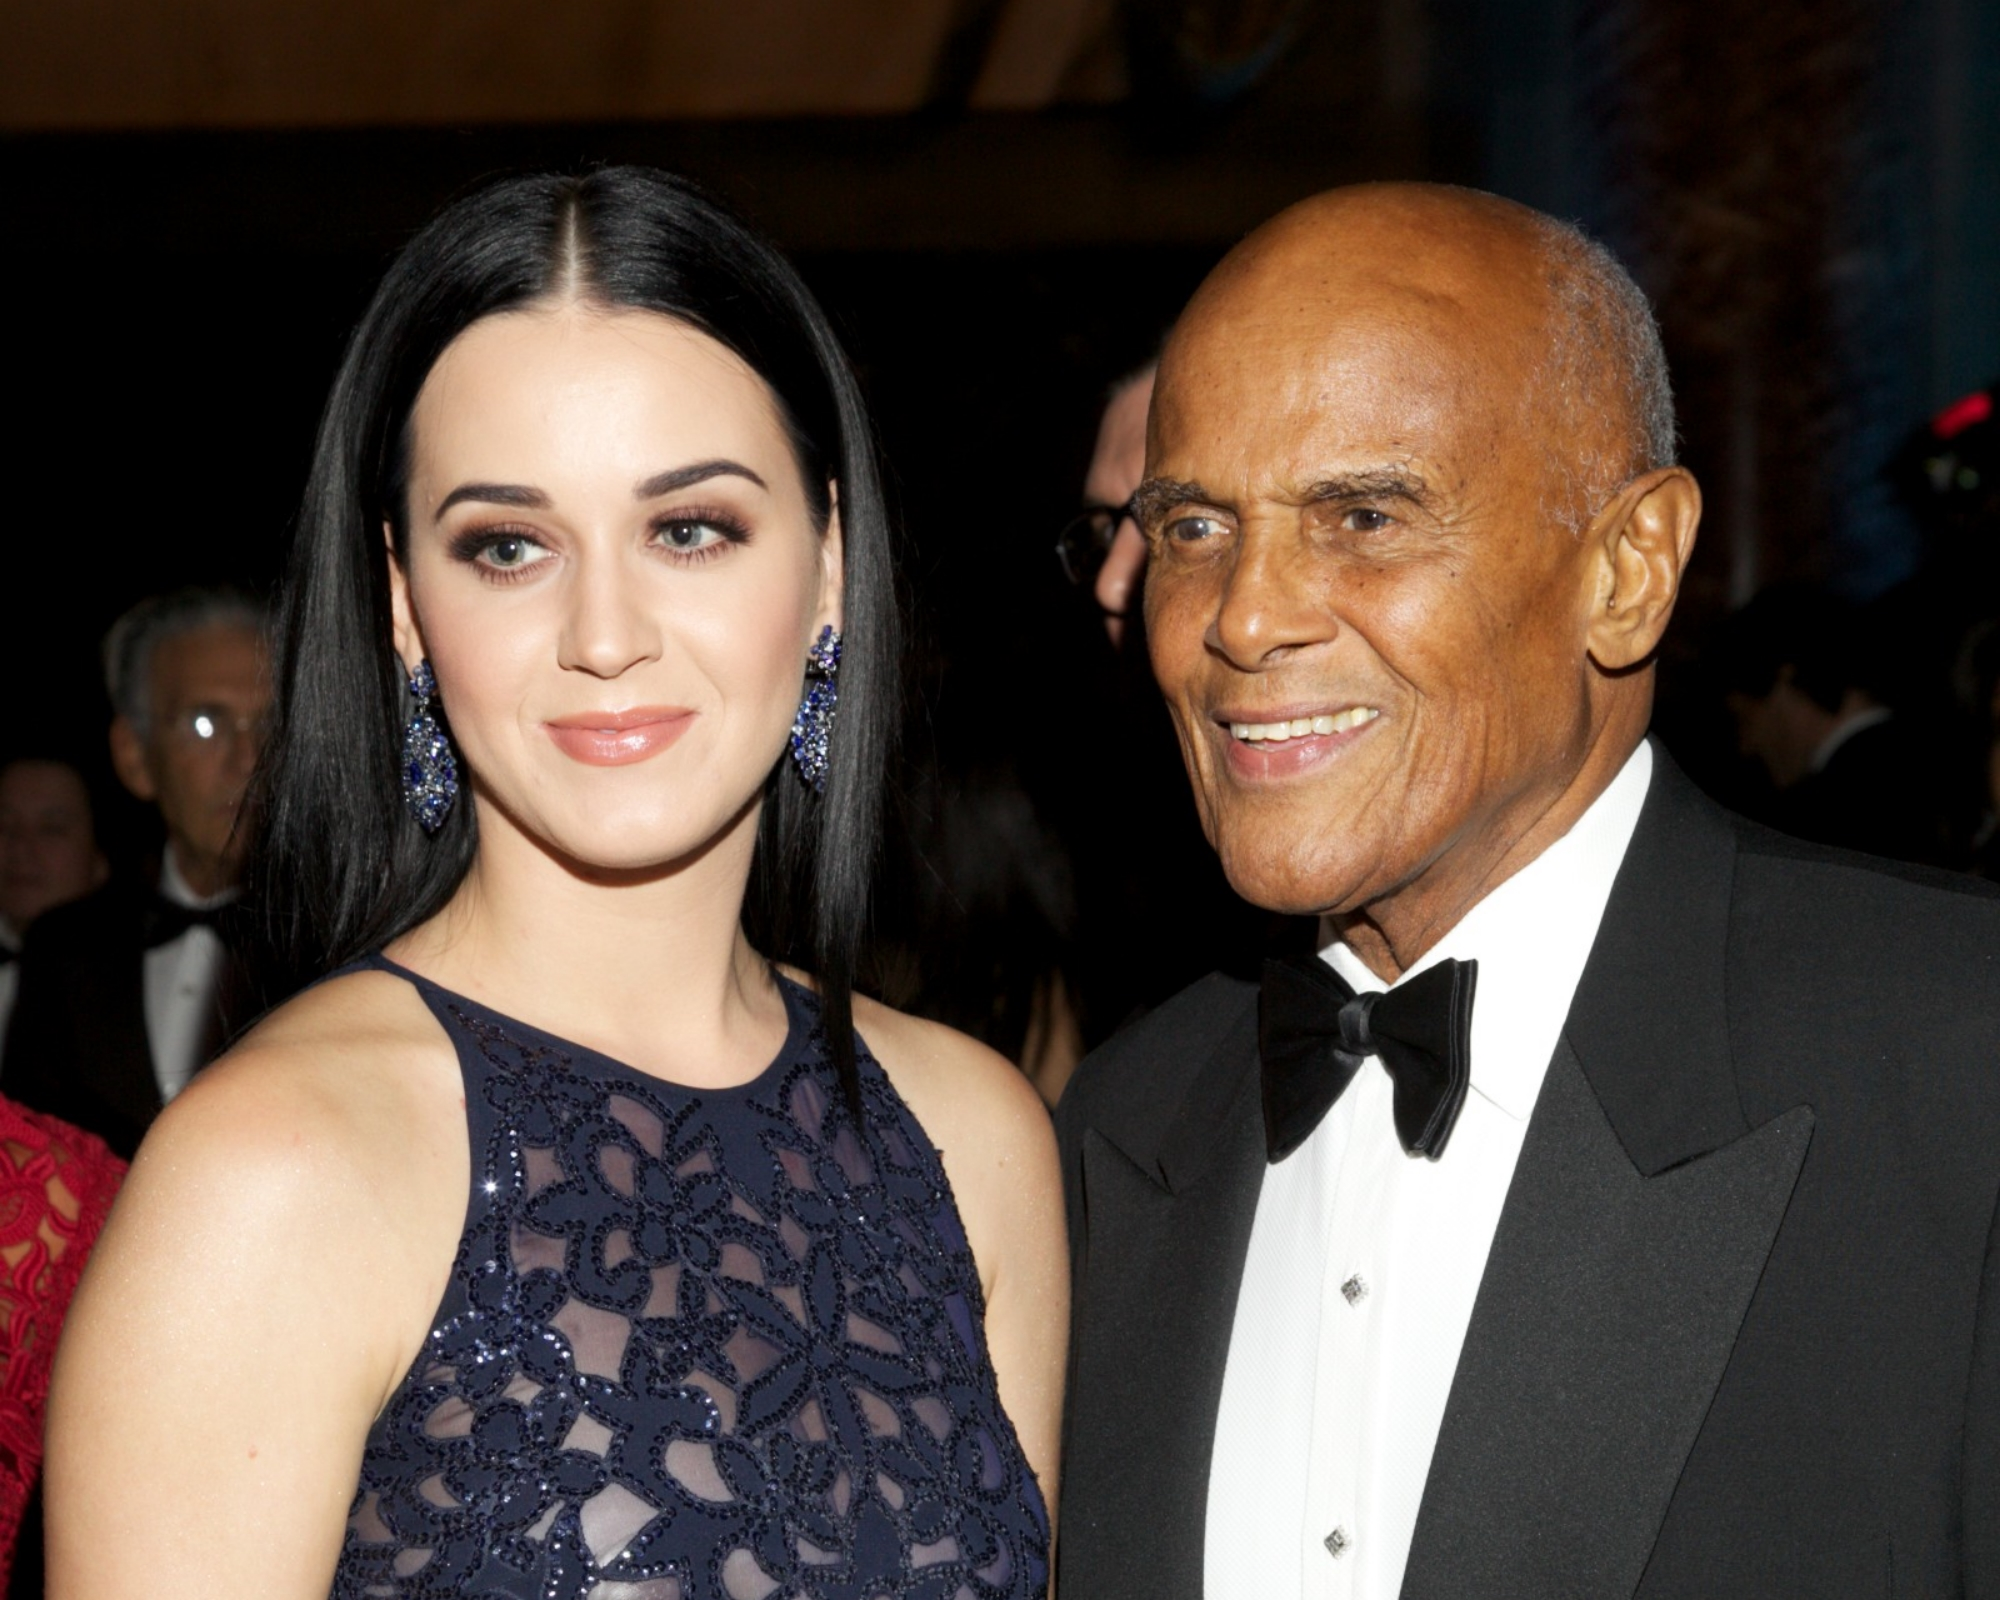 Katy Perry and Harry Belafonte